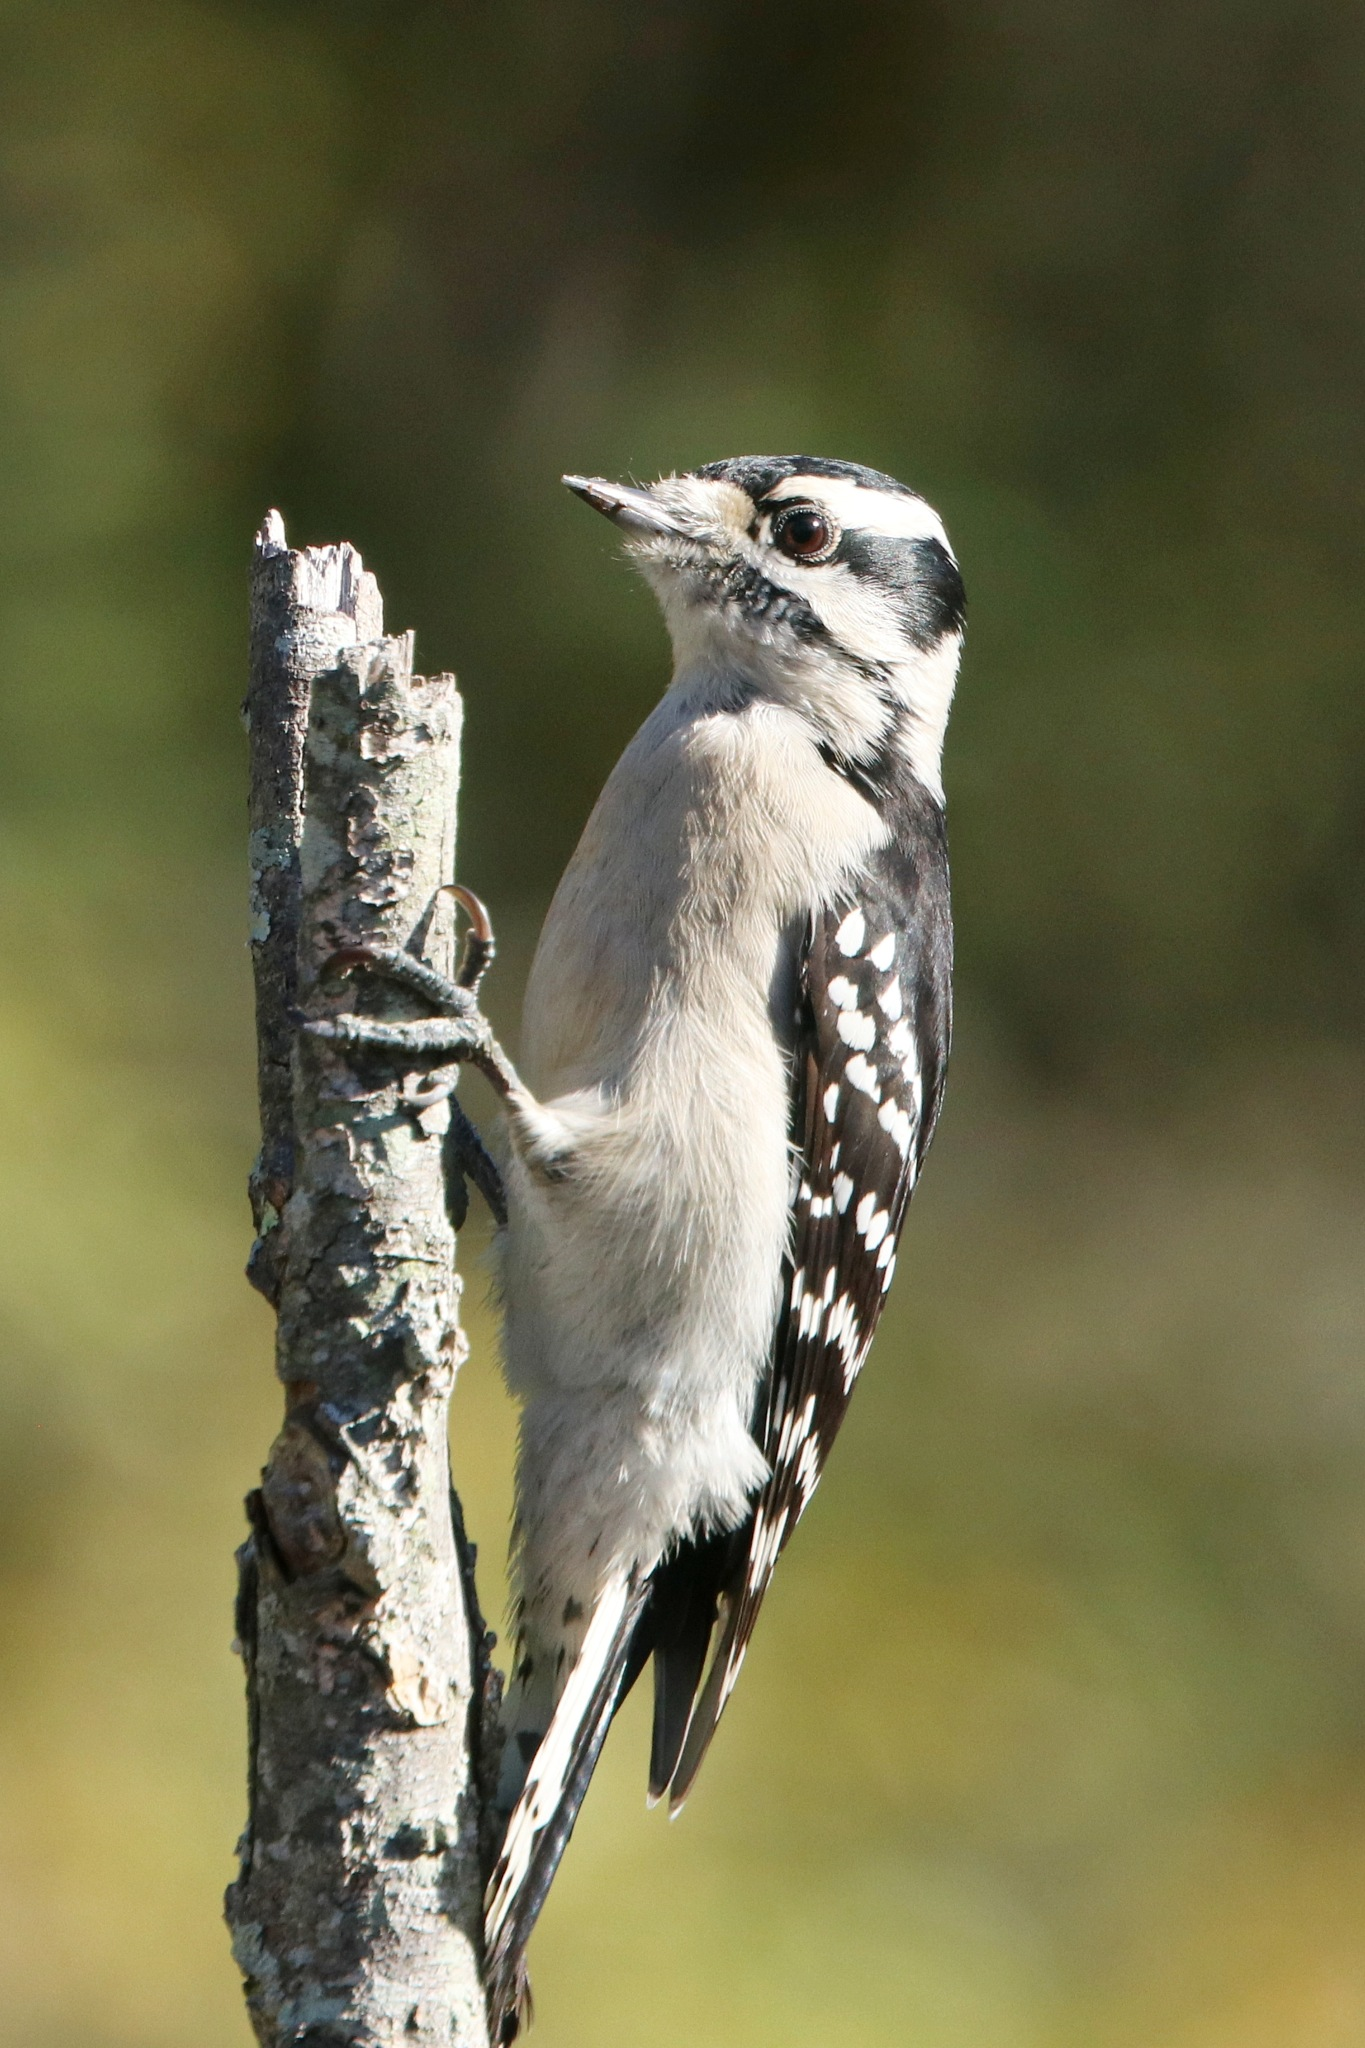 Downy Woodpecker by Gregory Kehle